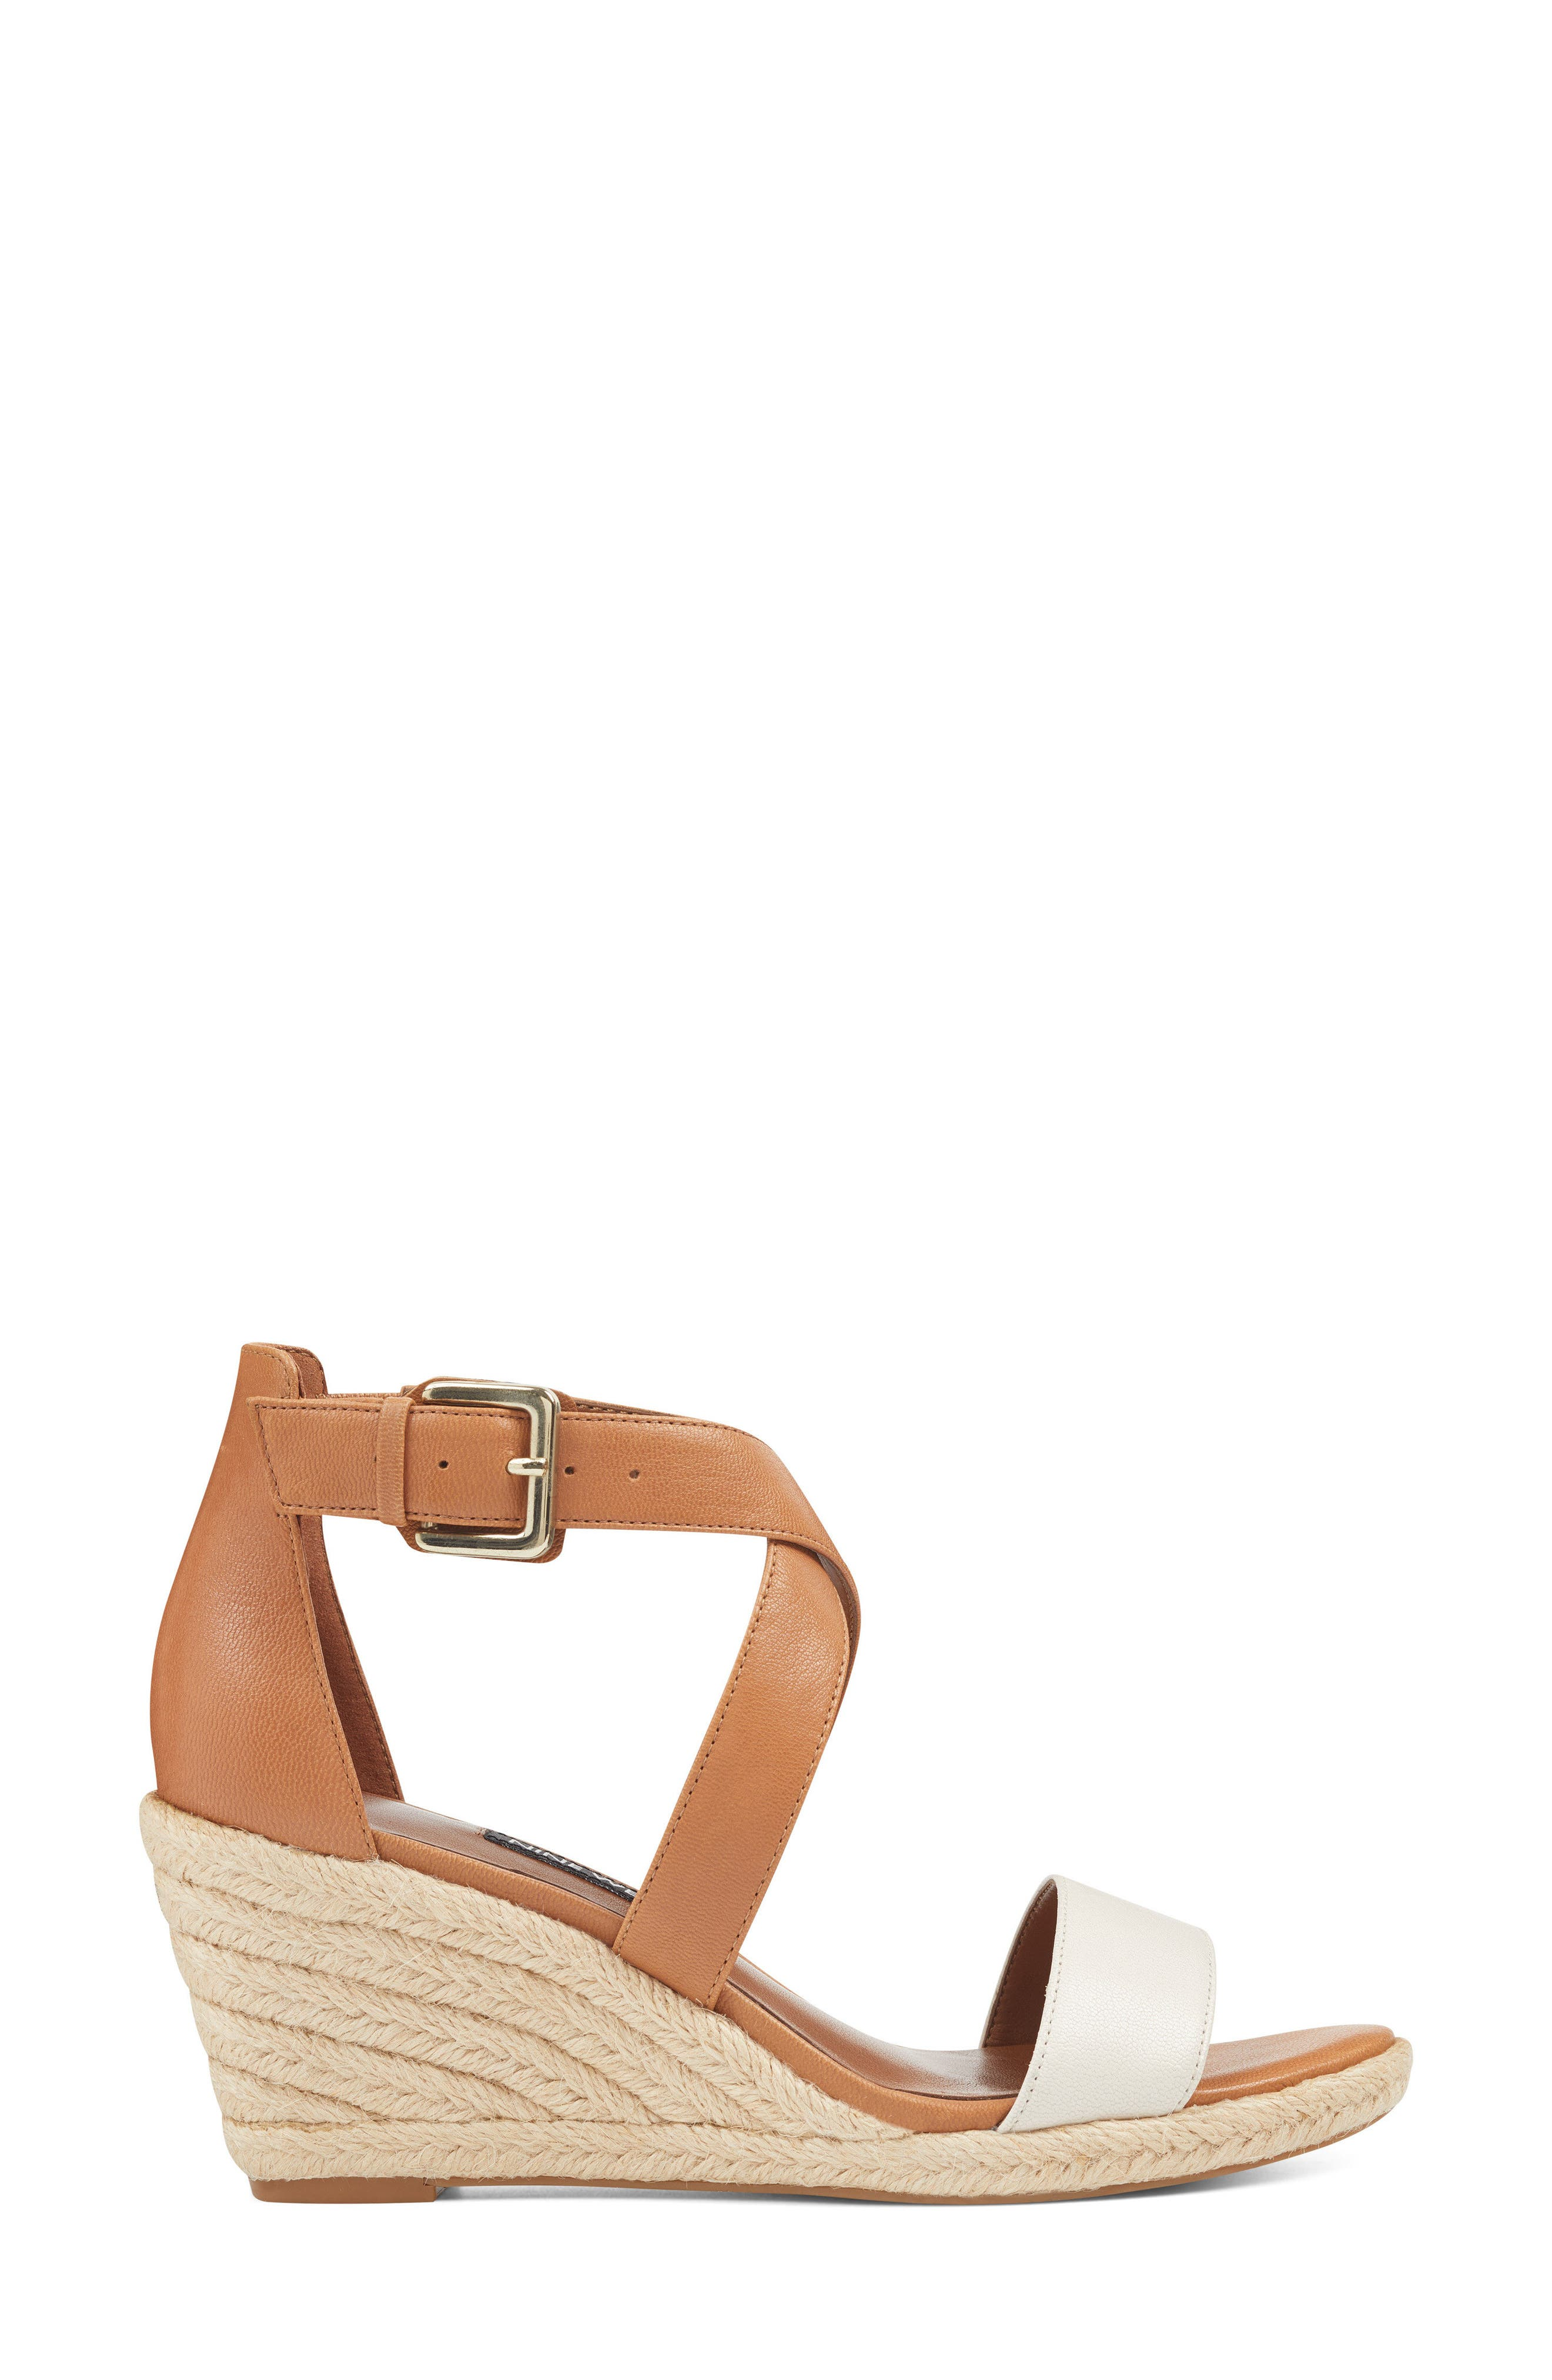 Jorjapeach Espadrille Wedge Sandal,                             Alternate thumbnail 3, color,                             White Leather